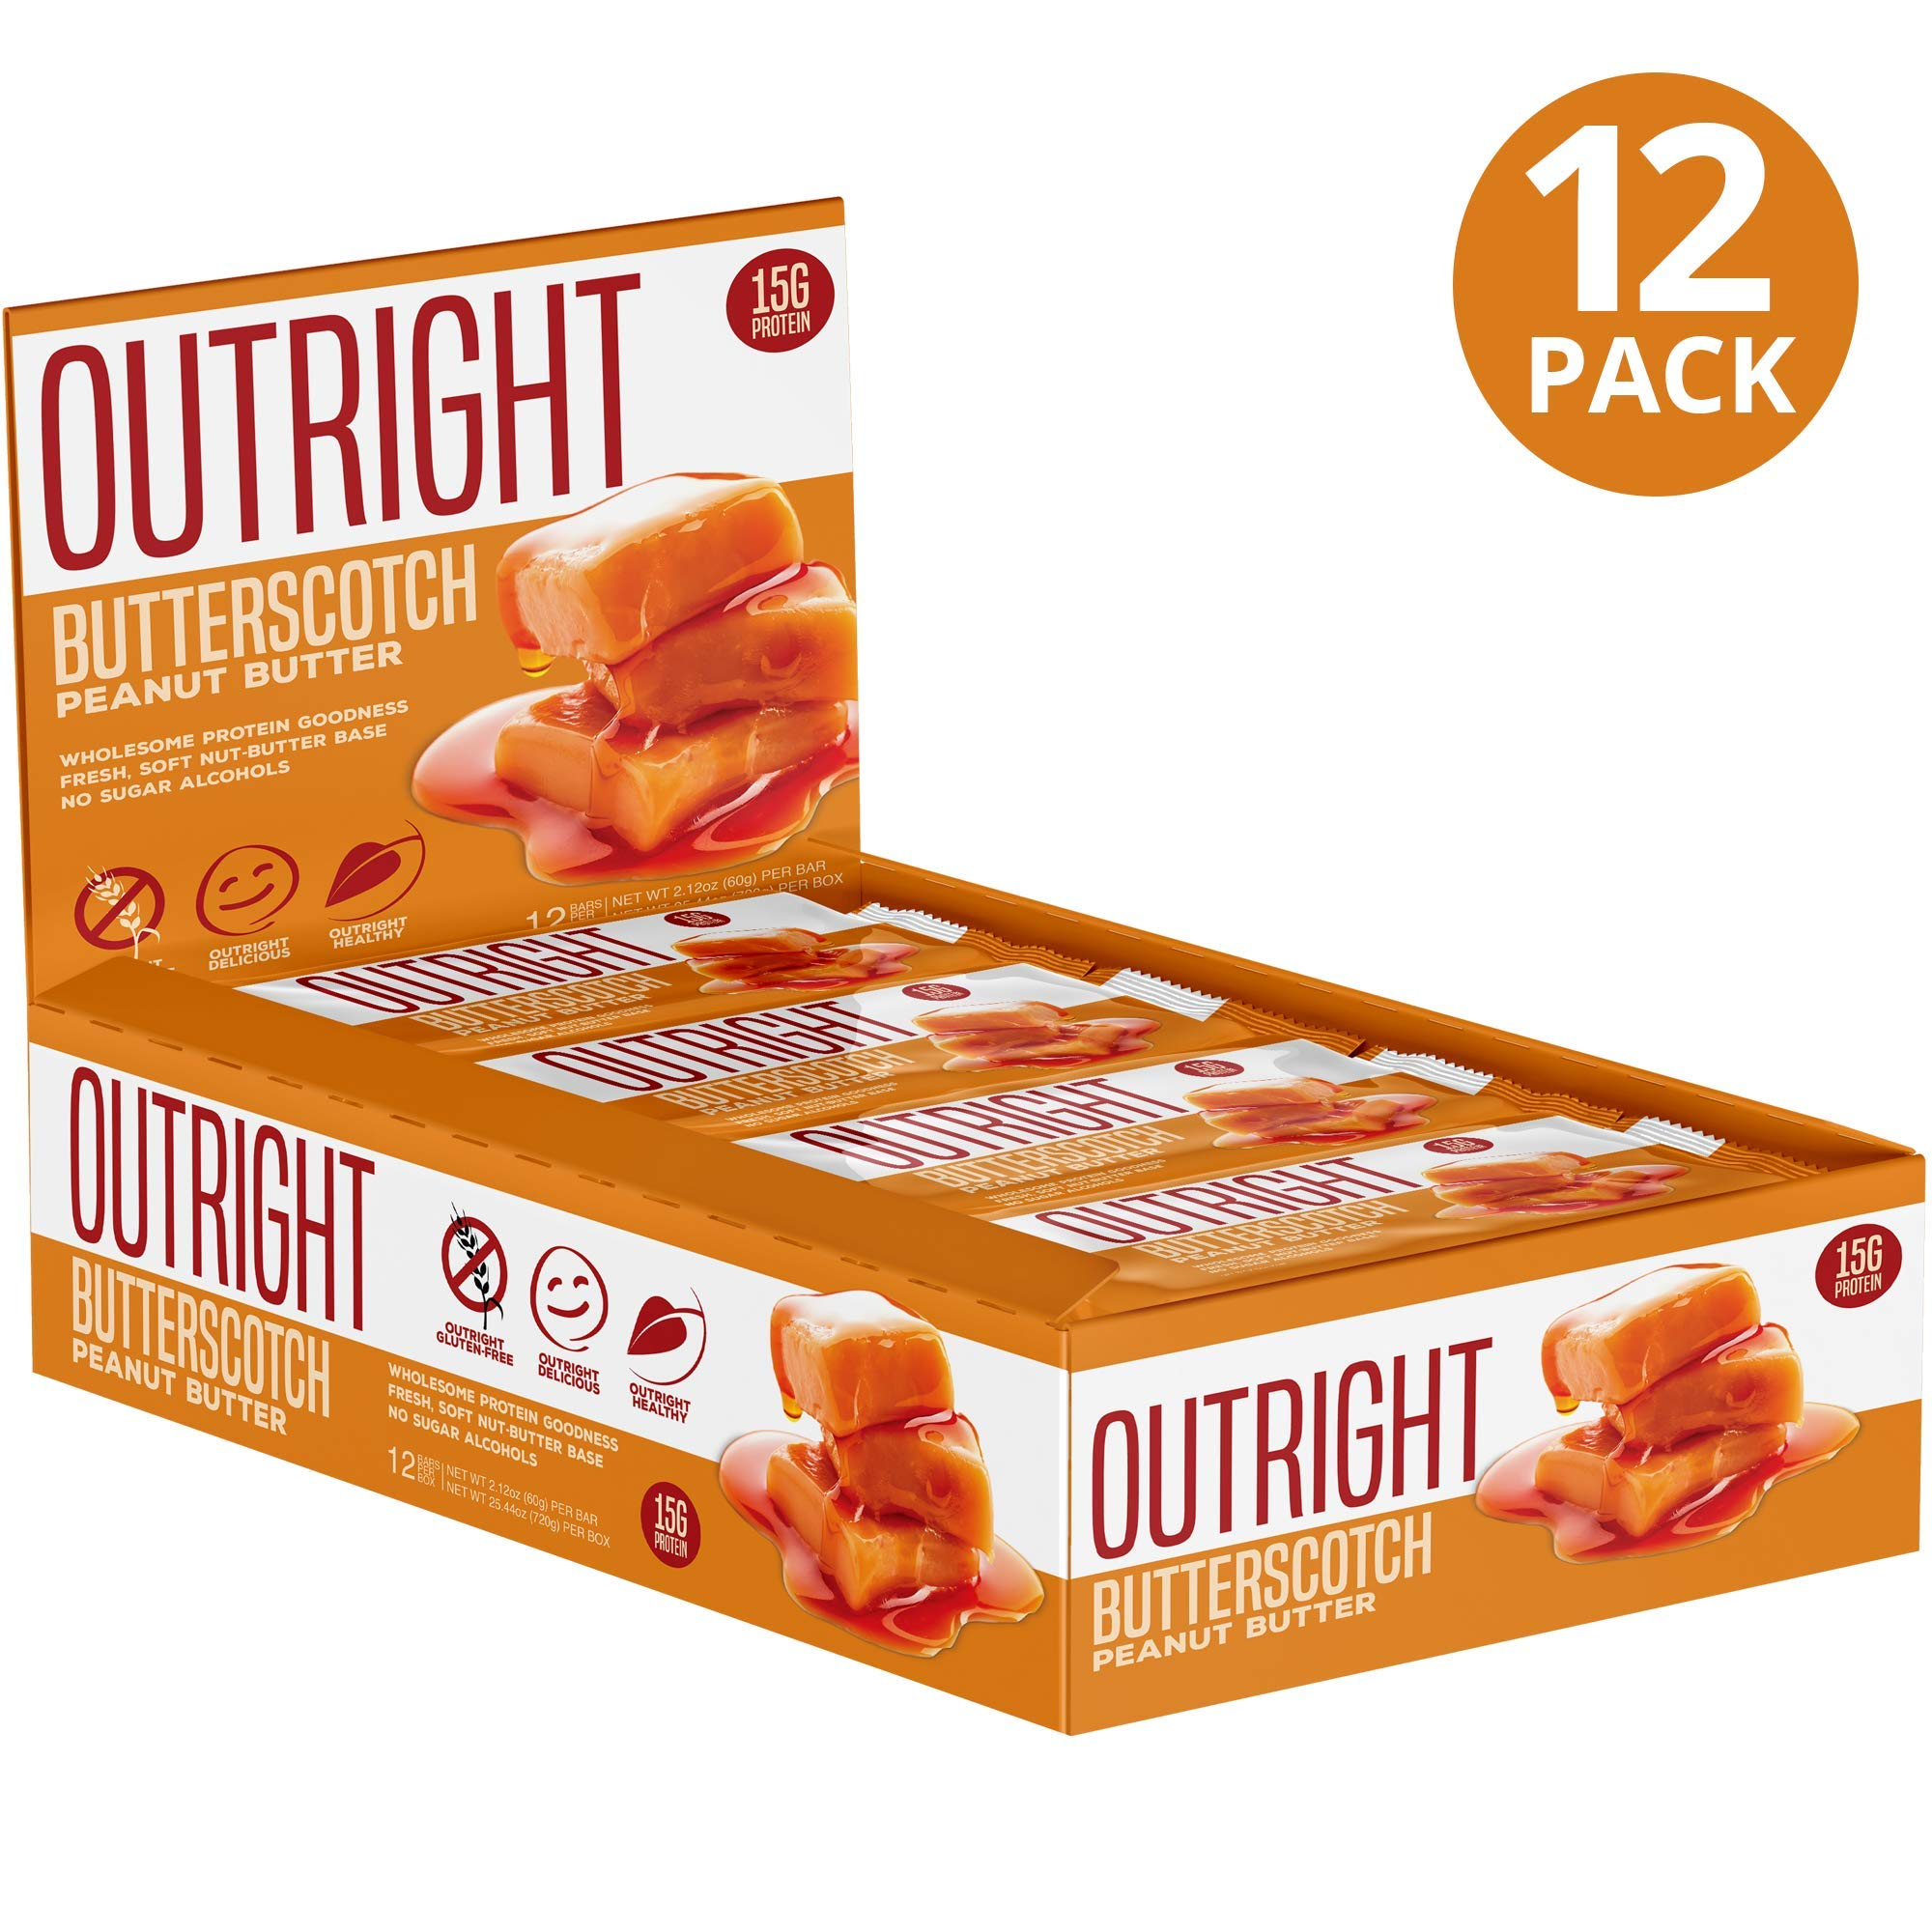 Outright Bar - Whole Food Protein Bar - 12 Pack - MTS Nutrition - Peanut Butter Butterscotch by MTS Nutrition